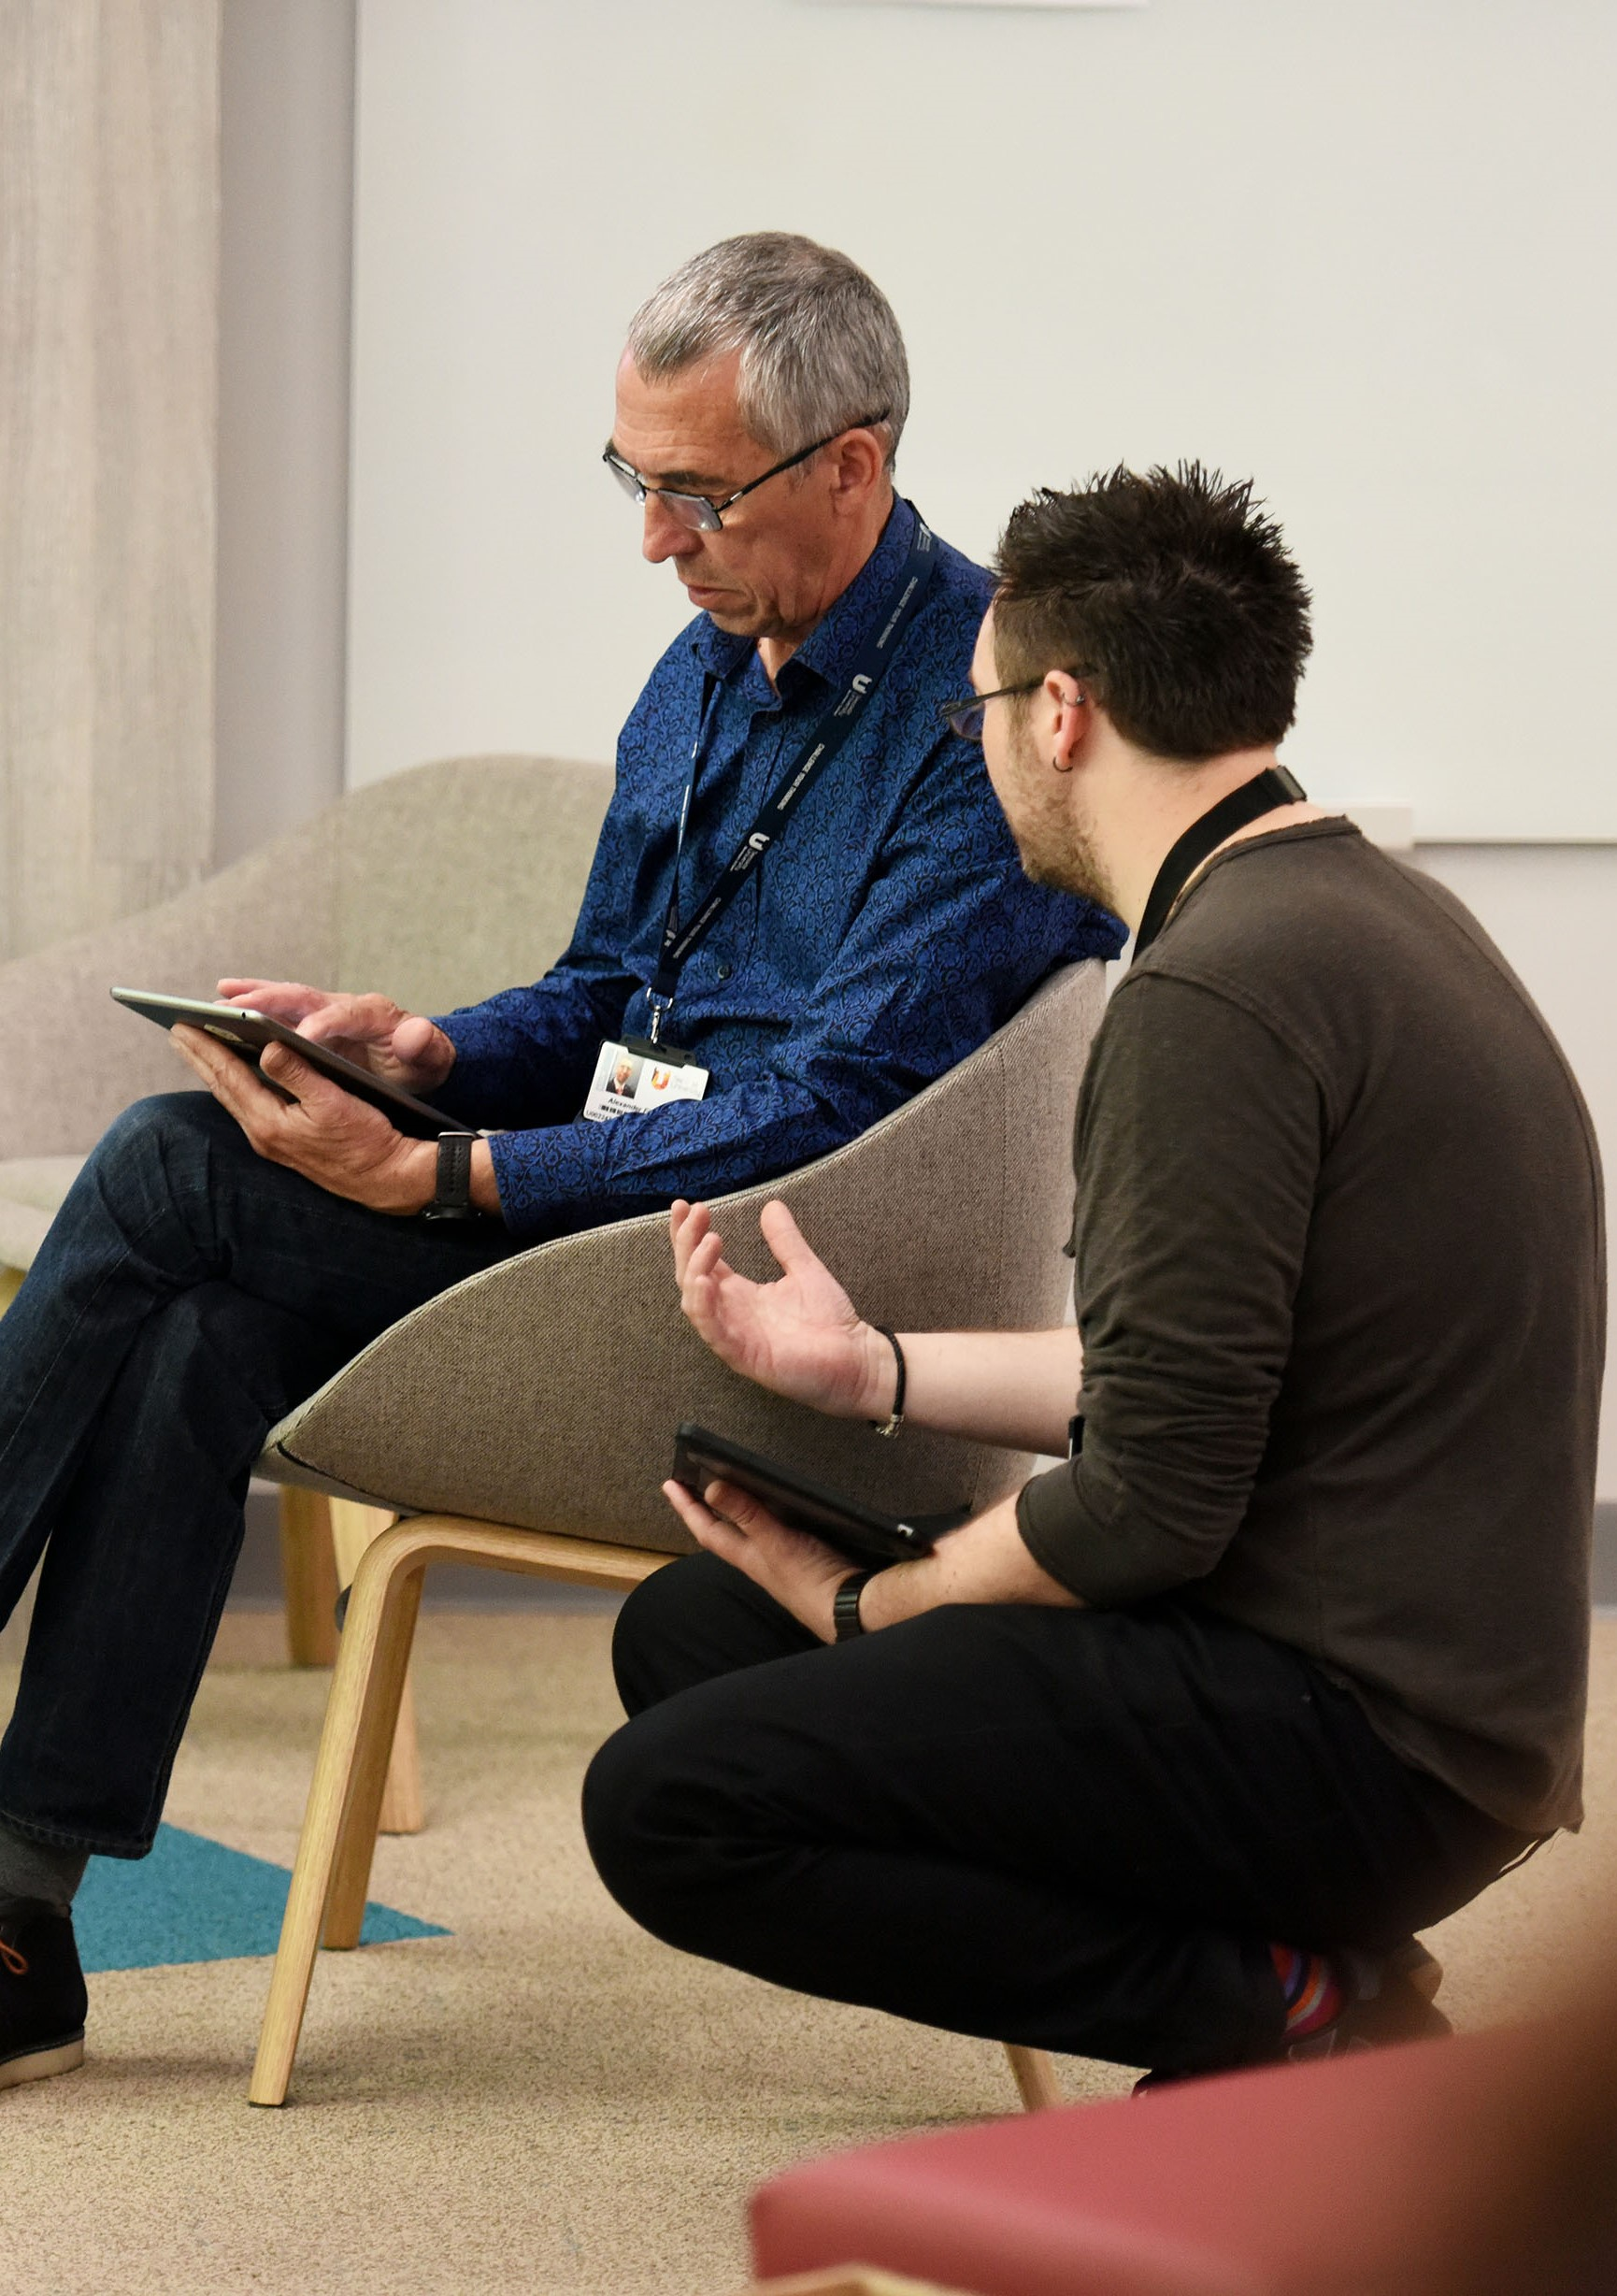 Richard training a team member on the future facing learning platform